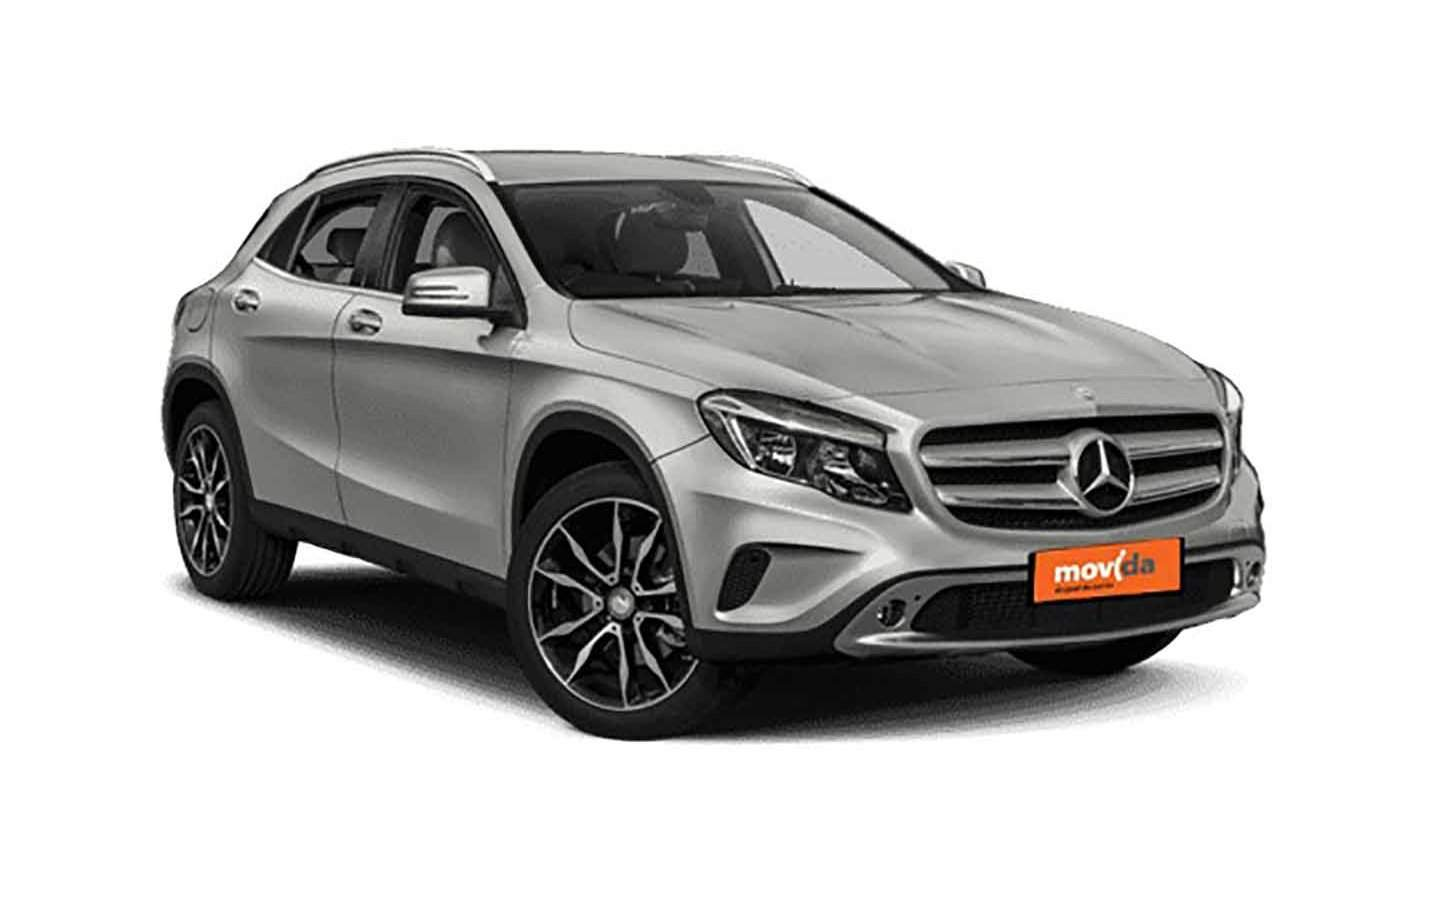 mercedes benz gla aluguel na movida sai a r 279 por dia car blog br. Black Bedroom Furniture Sets. Home Design Ideas